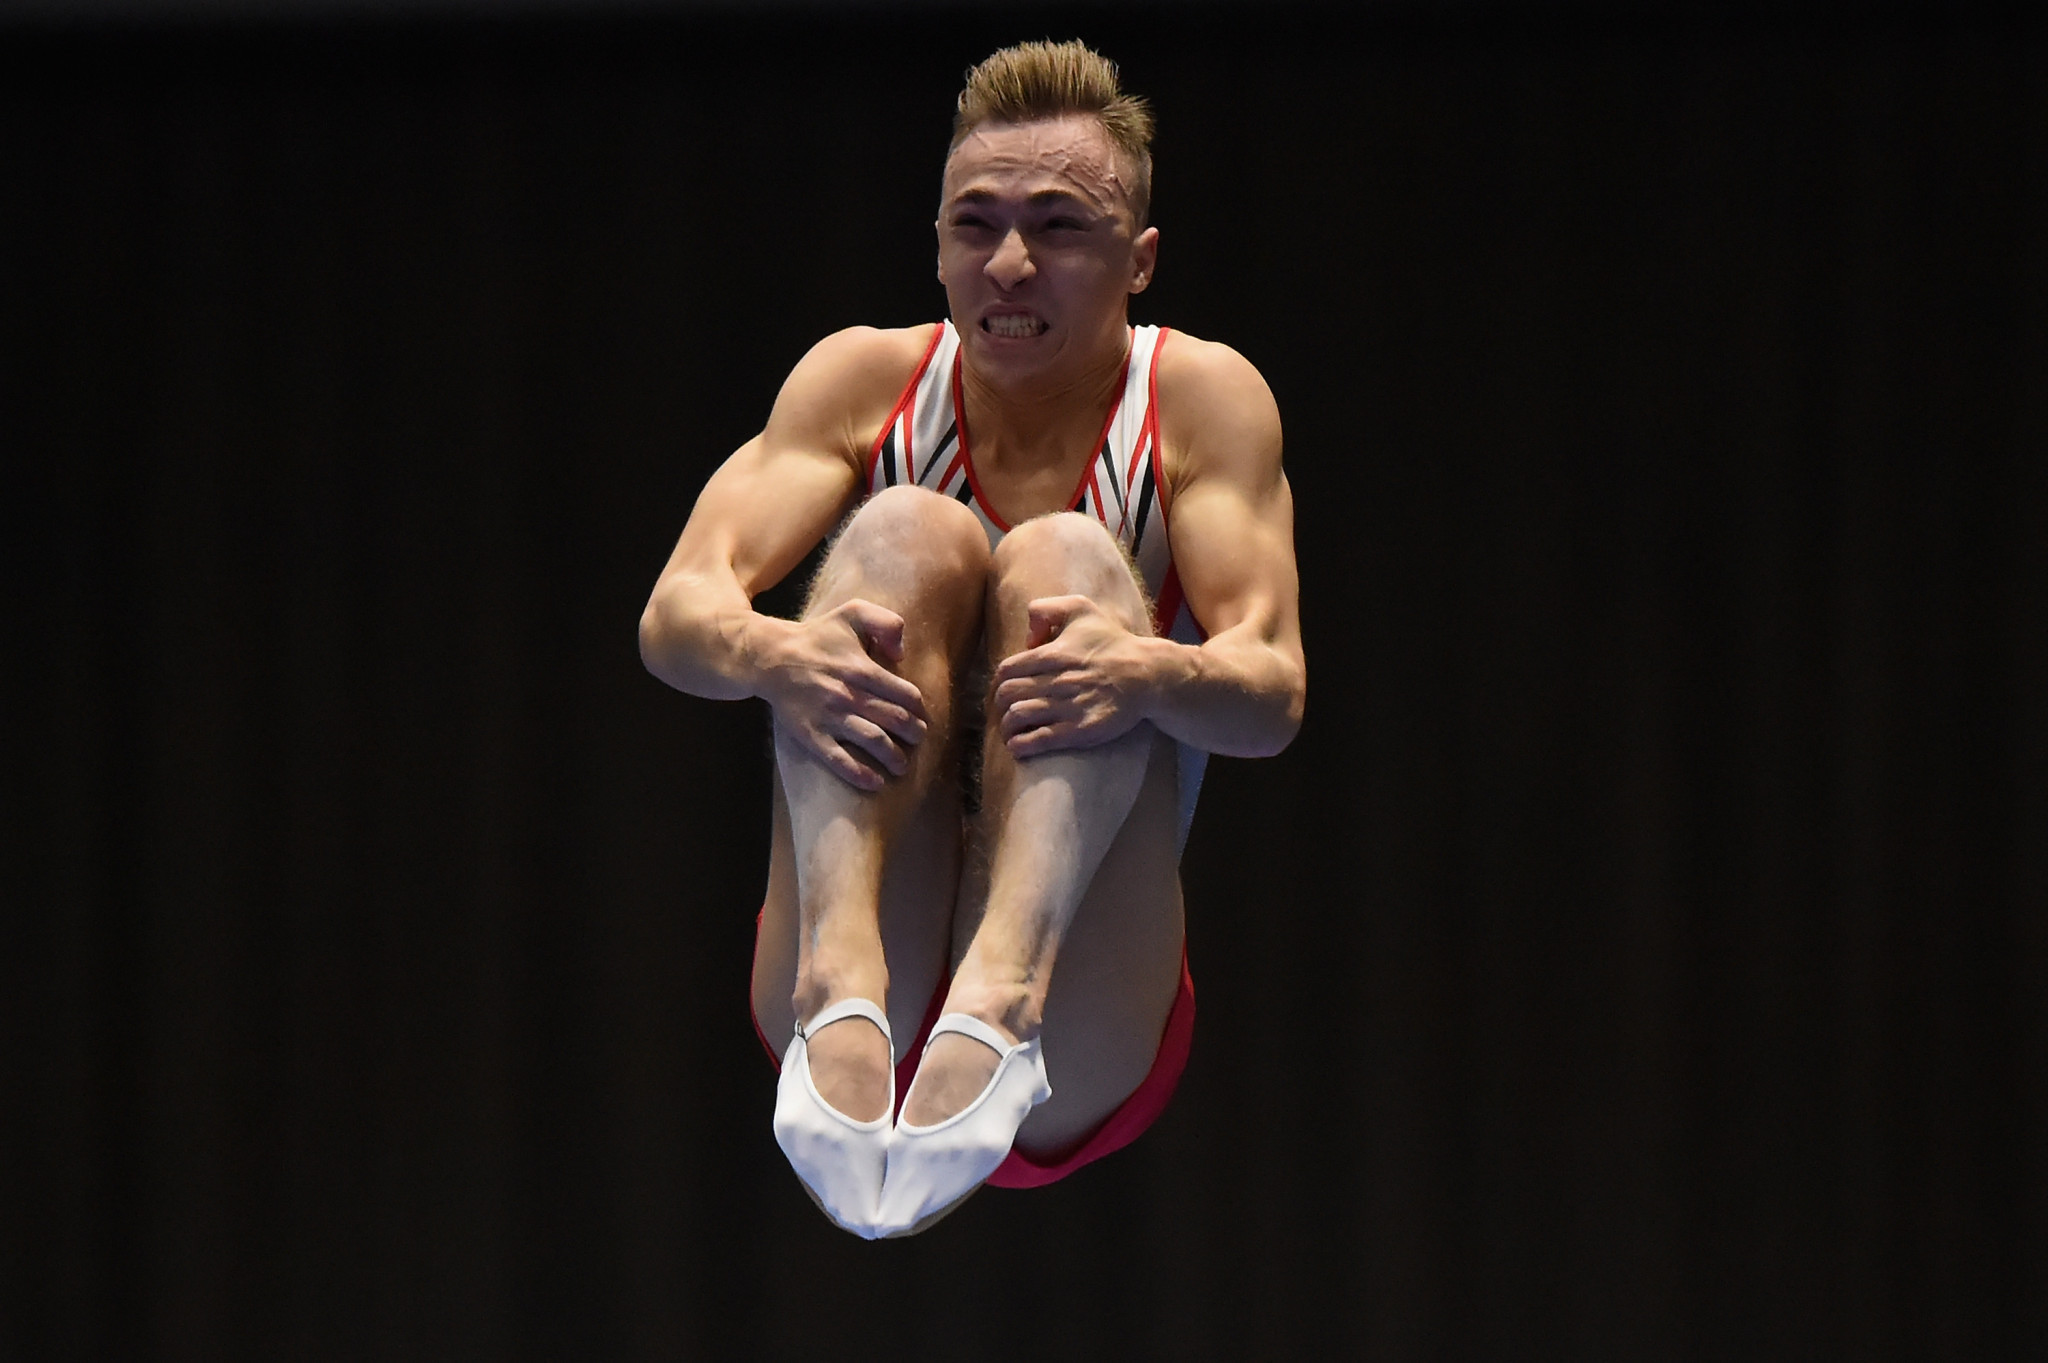 Hancharou heads men's qualification at Trampoline World Cup in Baku